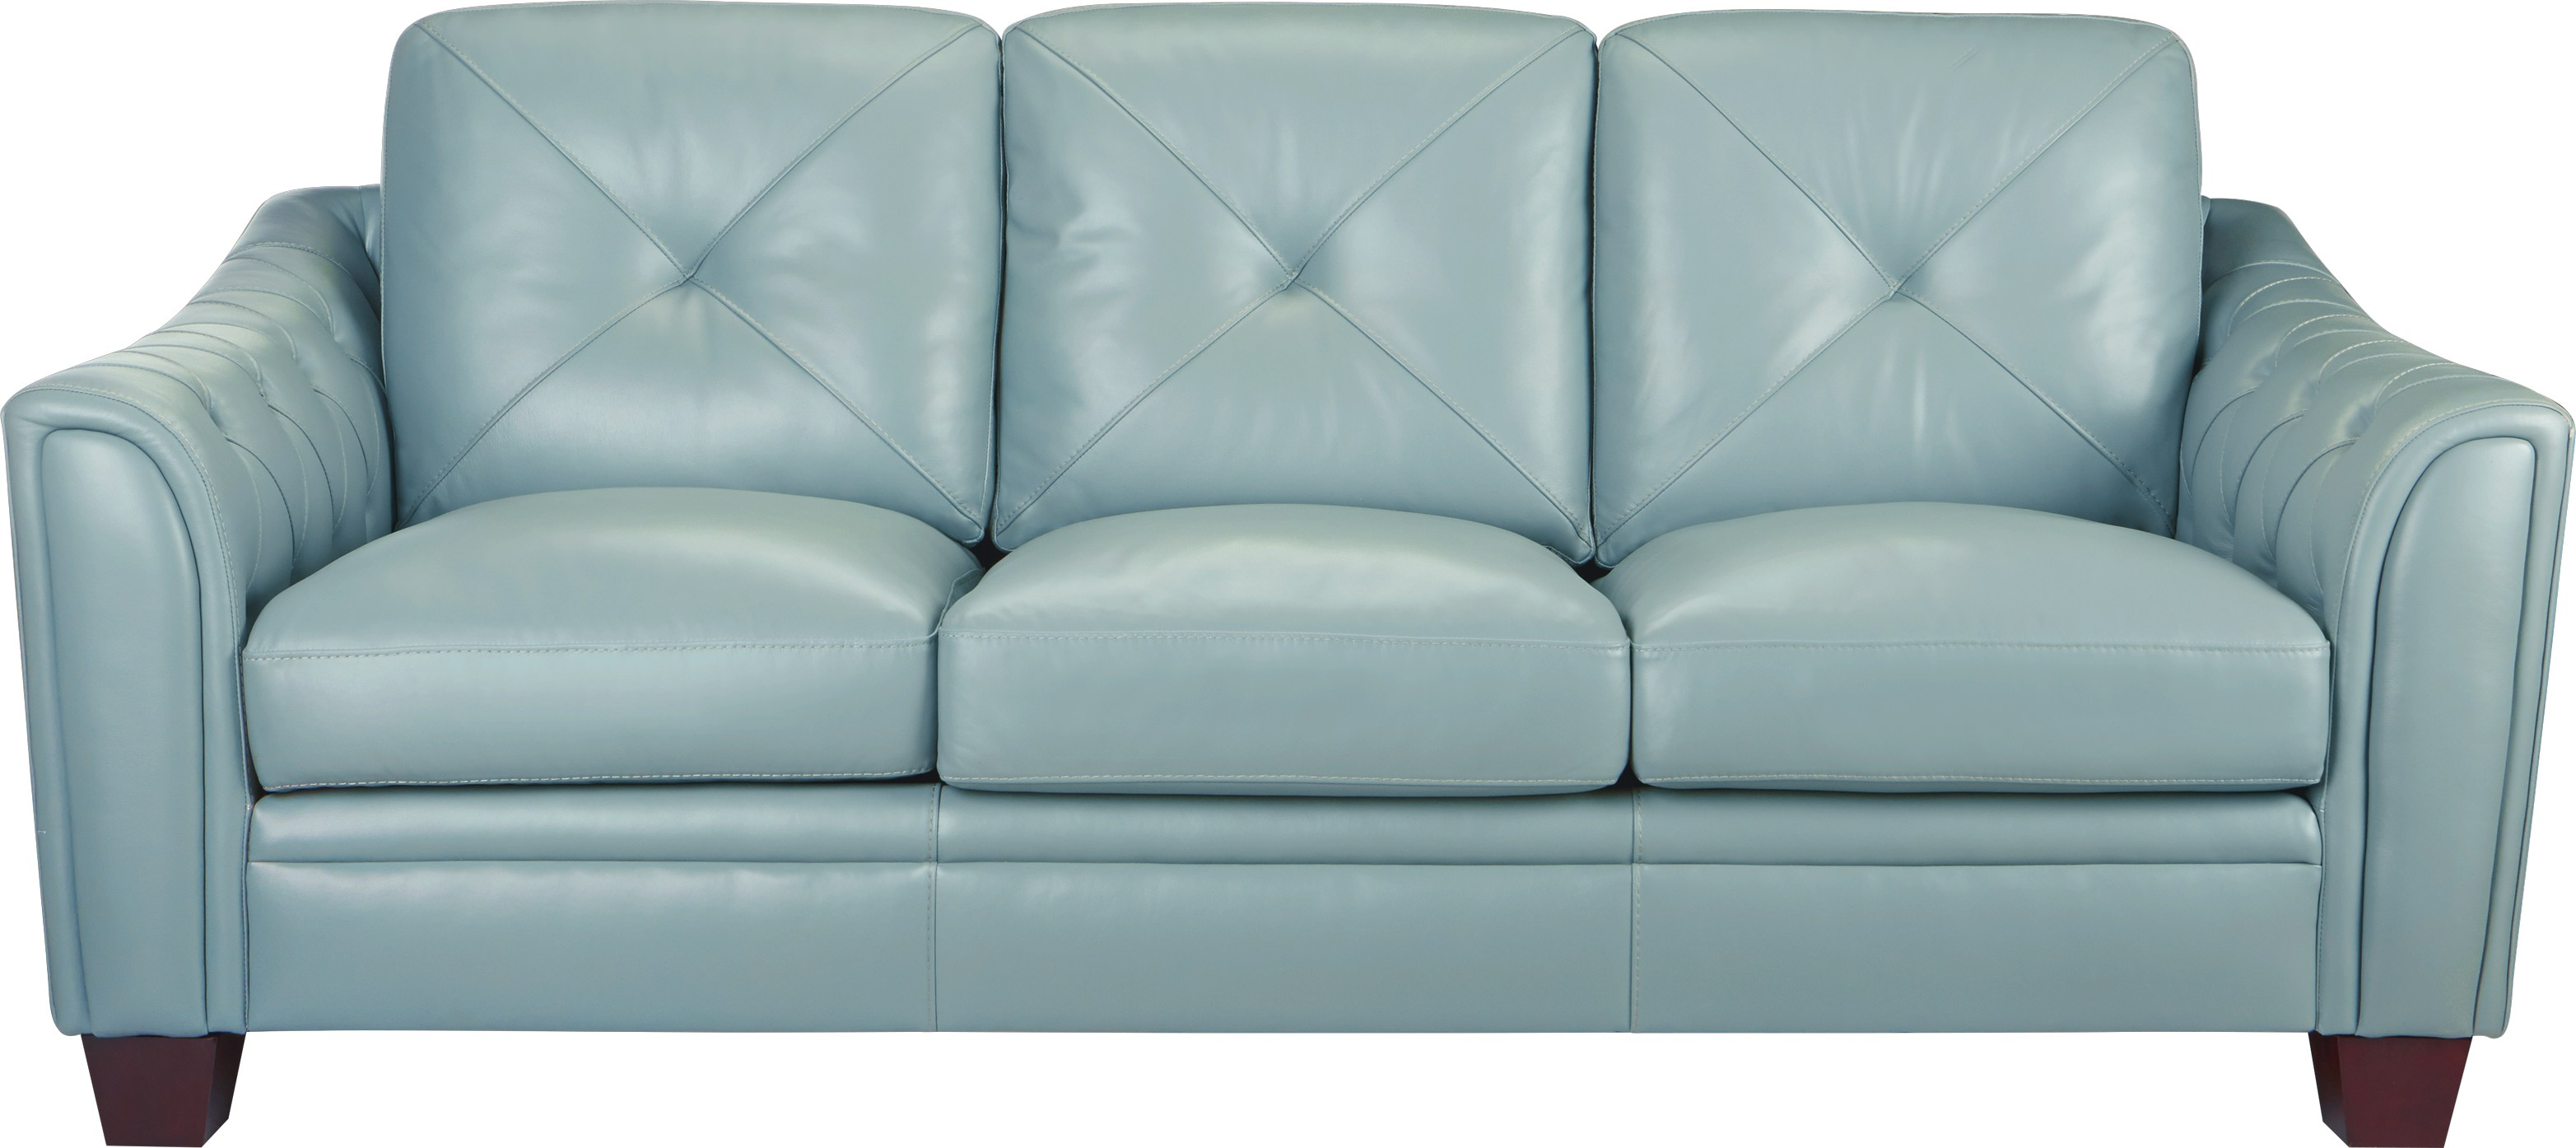 Cindy Crawford Home Marcella Spa Blue Leather Sofa - Leather Sofas (Blue)